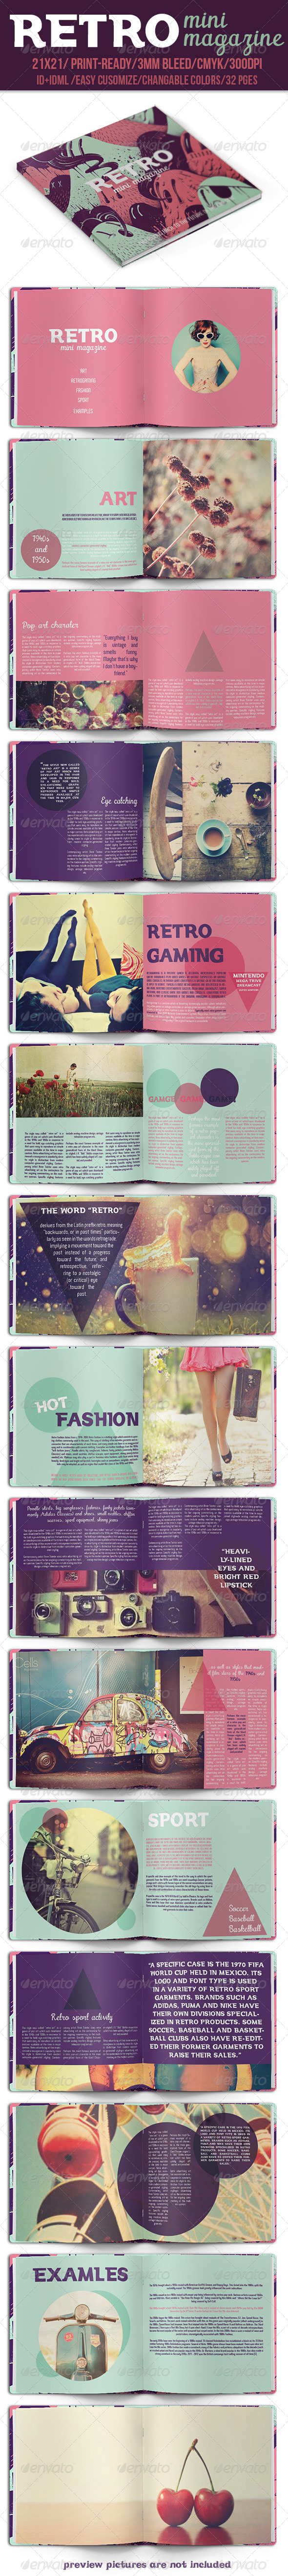 GraphicRiver Retro Mini Magazine 8240804